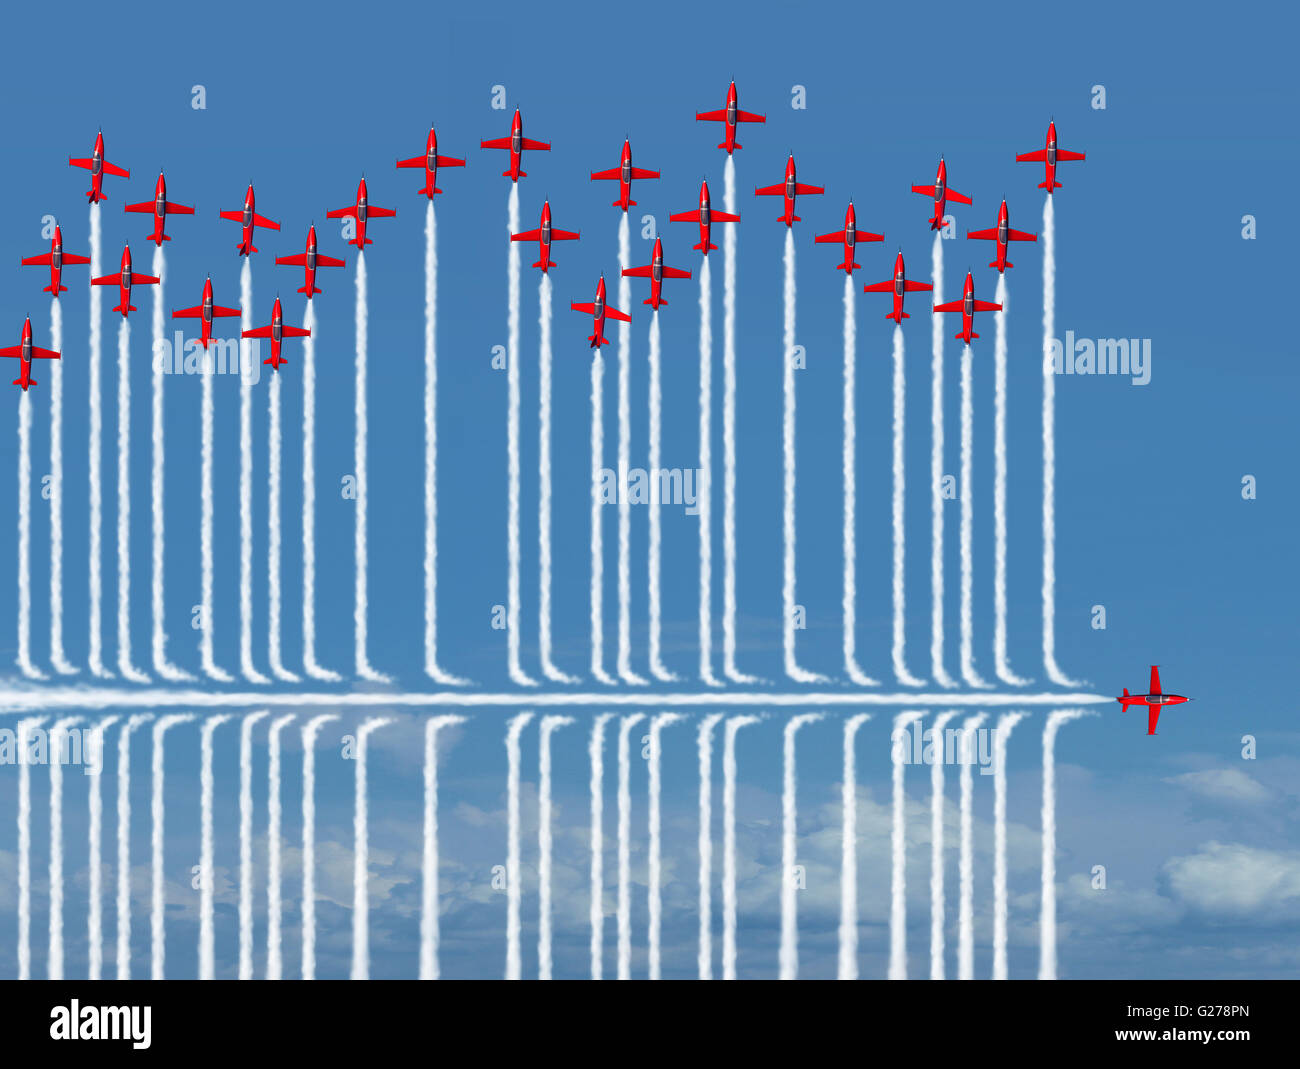 Different strategy business concept as an individual jet airplane flying under the competition as a metaphor for - Stock Image